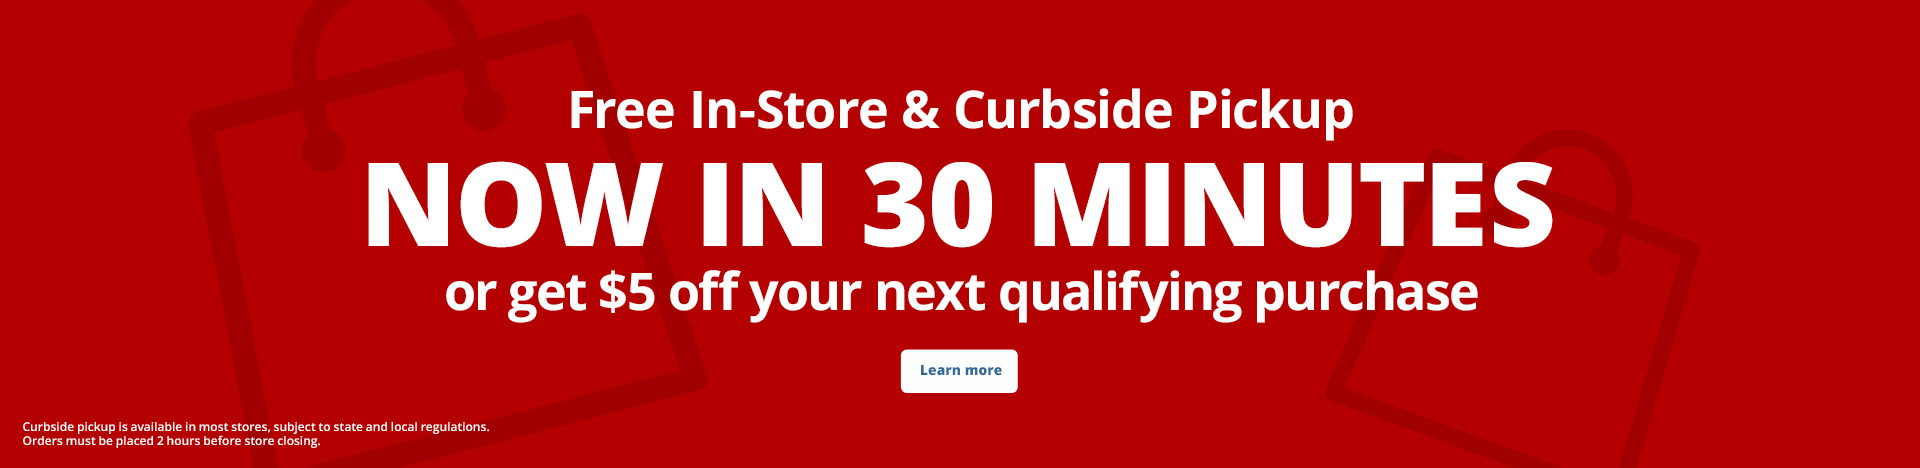 Free In-Store & Curbside Pickup. Now in 30 minutes or get $5 off your next qualifying purchase